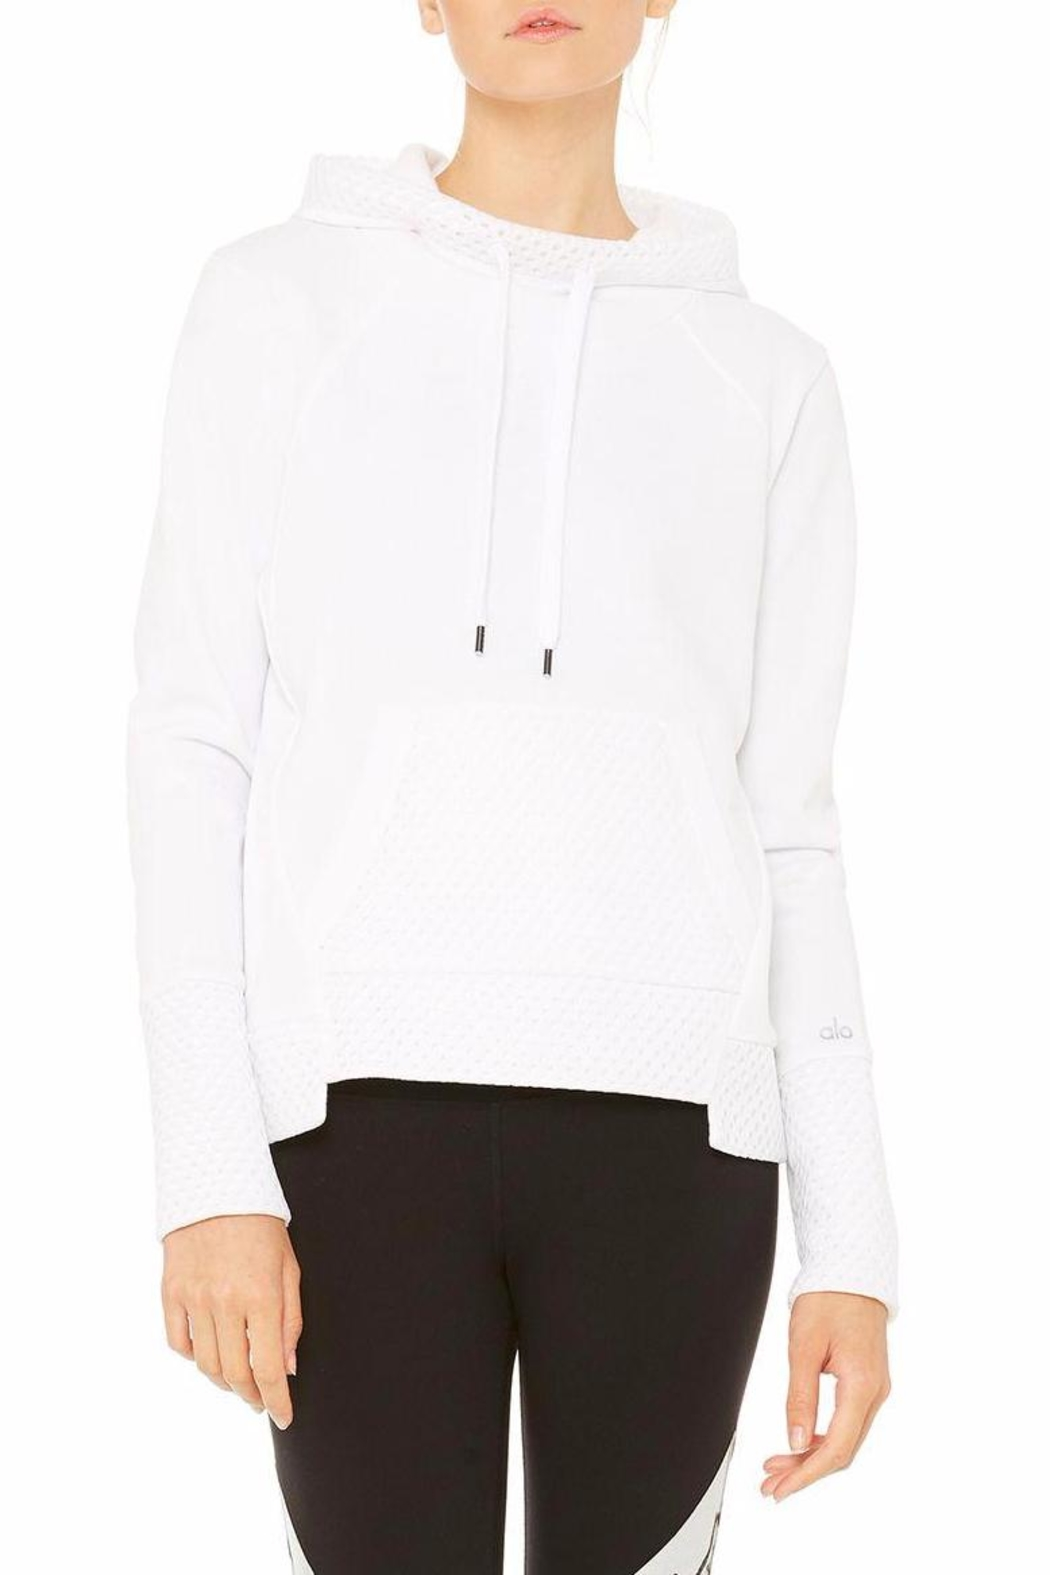 ALO Yoga Eclipse Long-Sleeve Top - Front Cropped Image